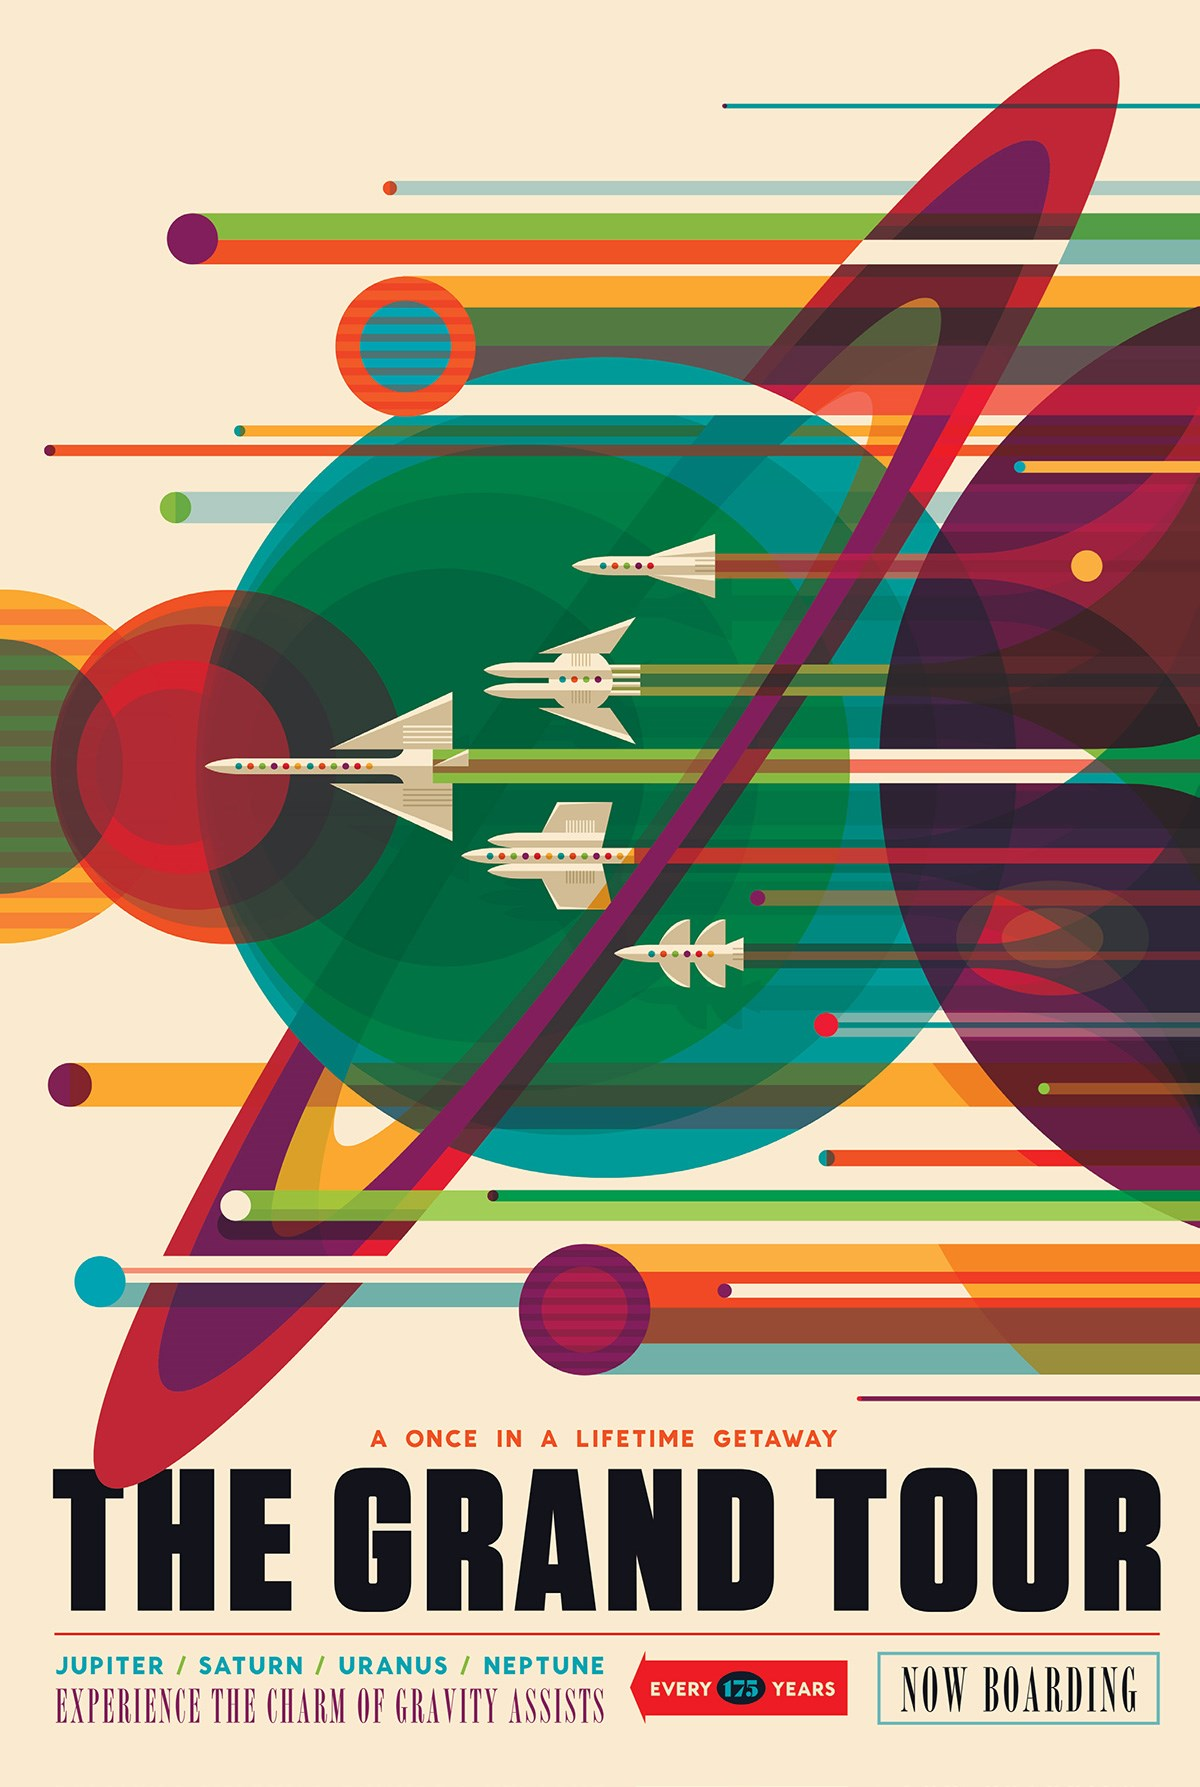 Space Tourism is the Next Frontier, So Here Are the Posters